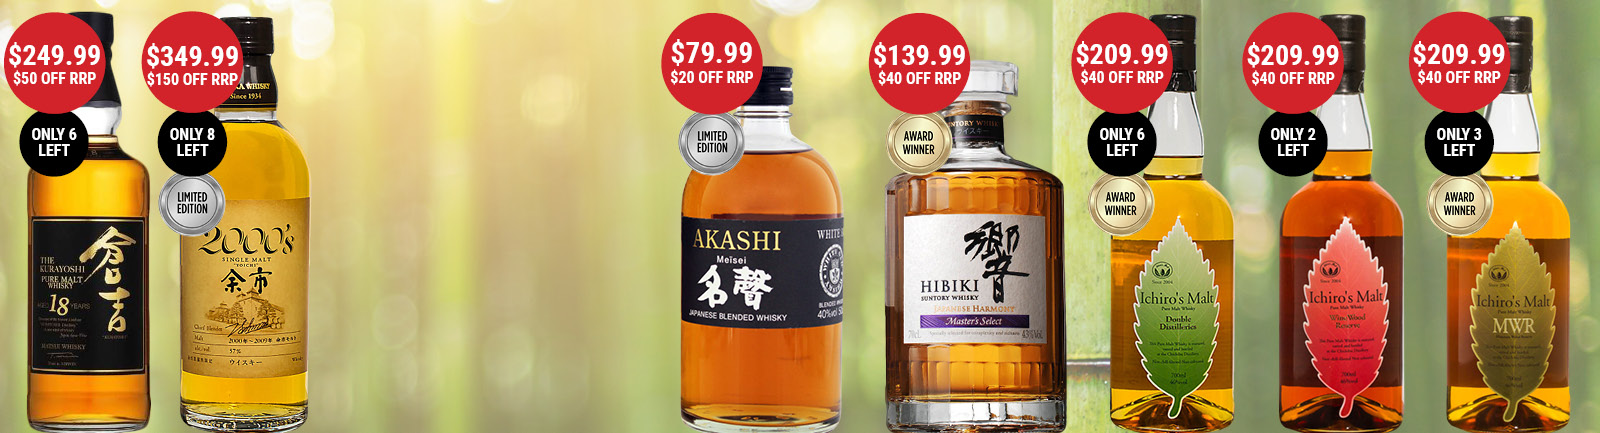 slider-japanese-whisky-sale.jpg